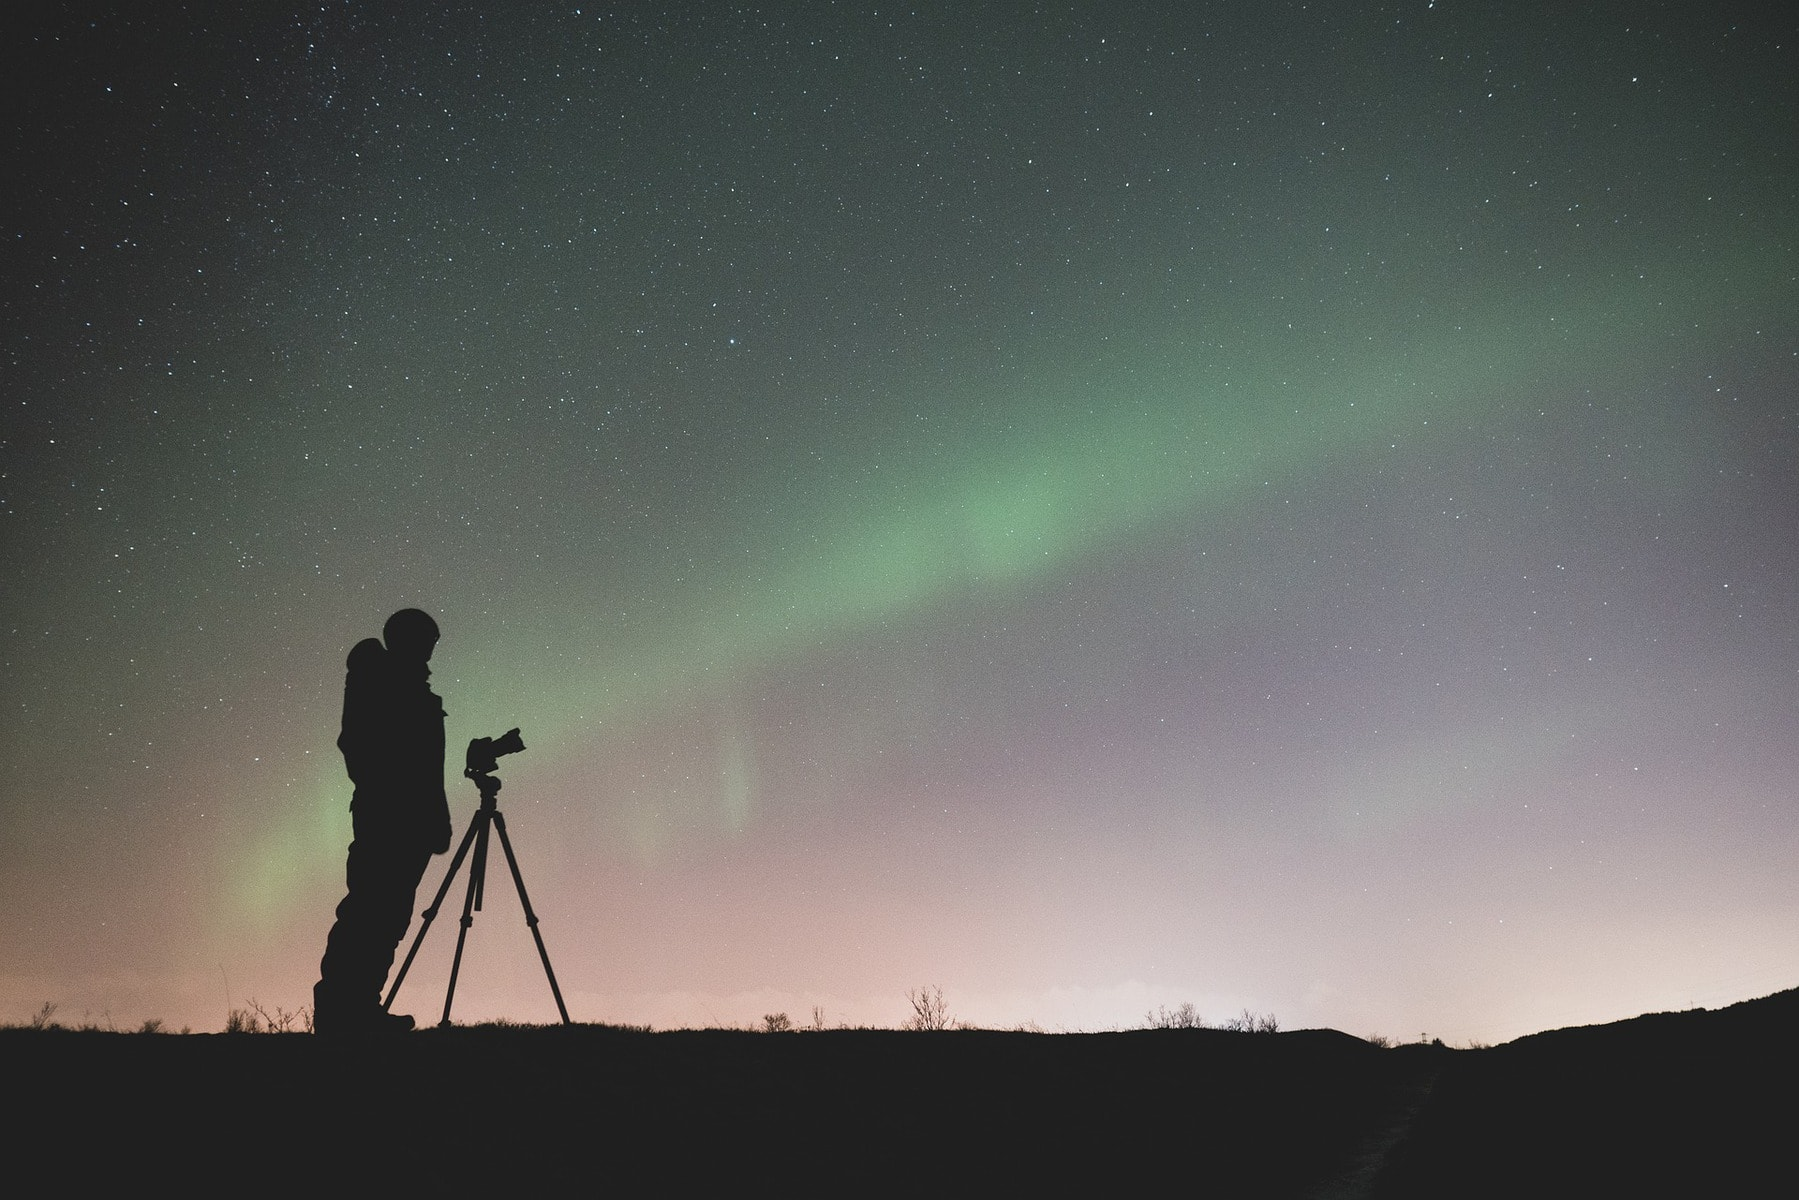 Man with tripod at dusk